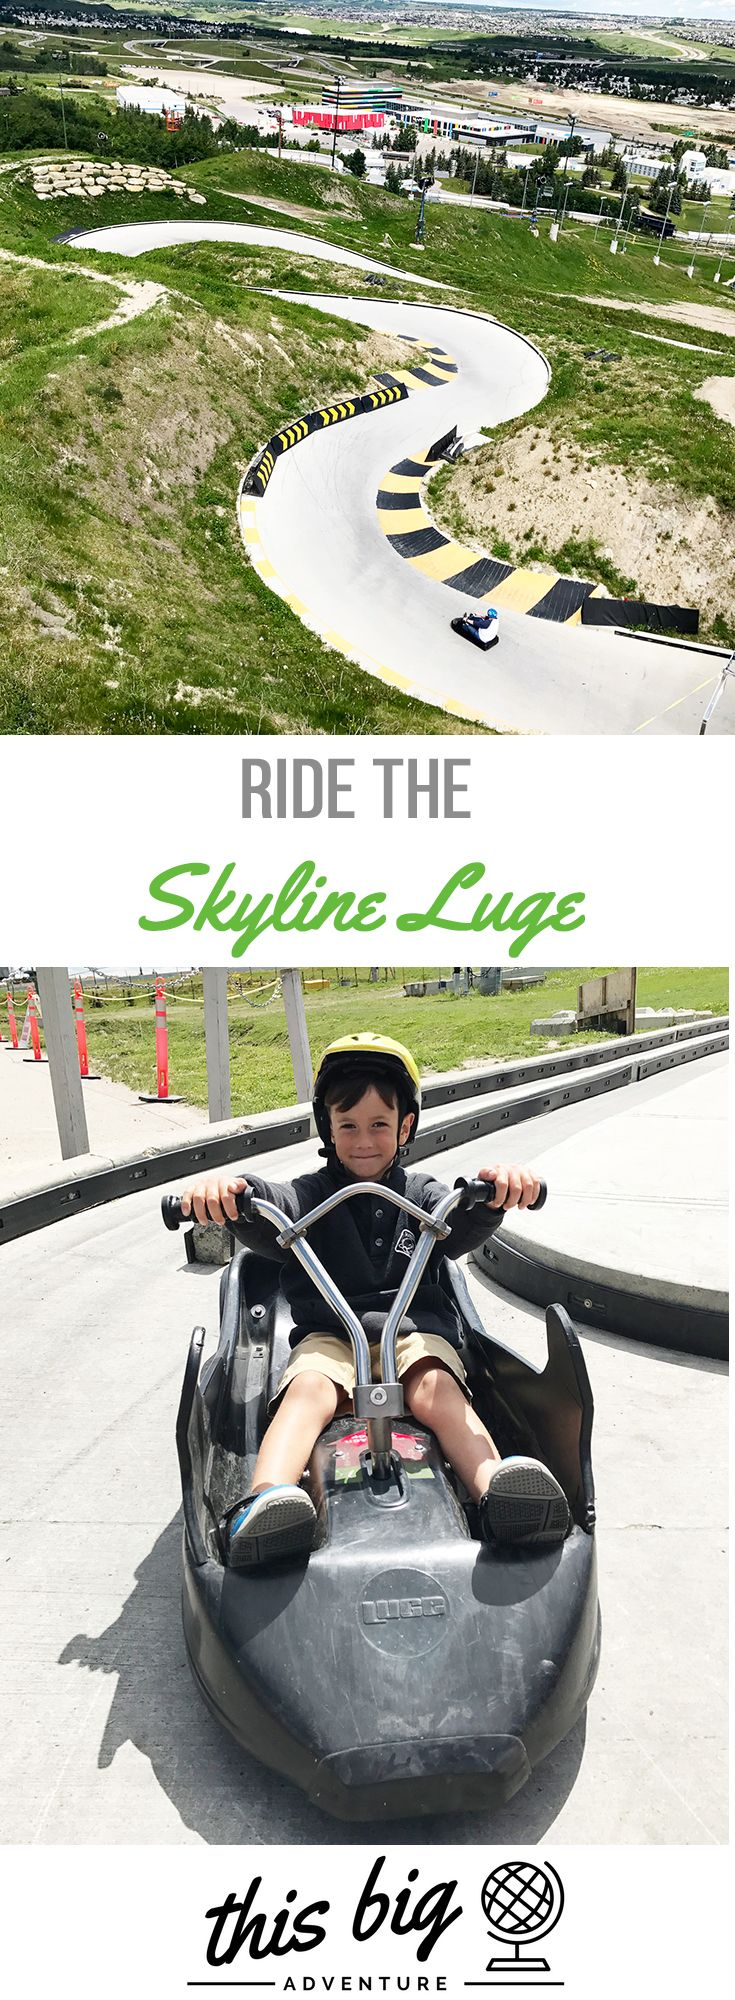 Ride the Skyline Luge